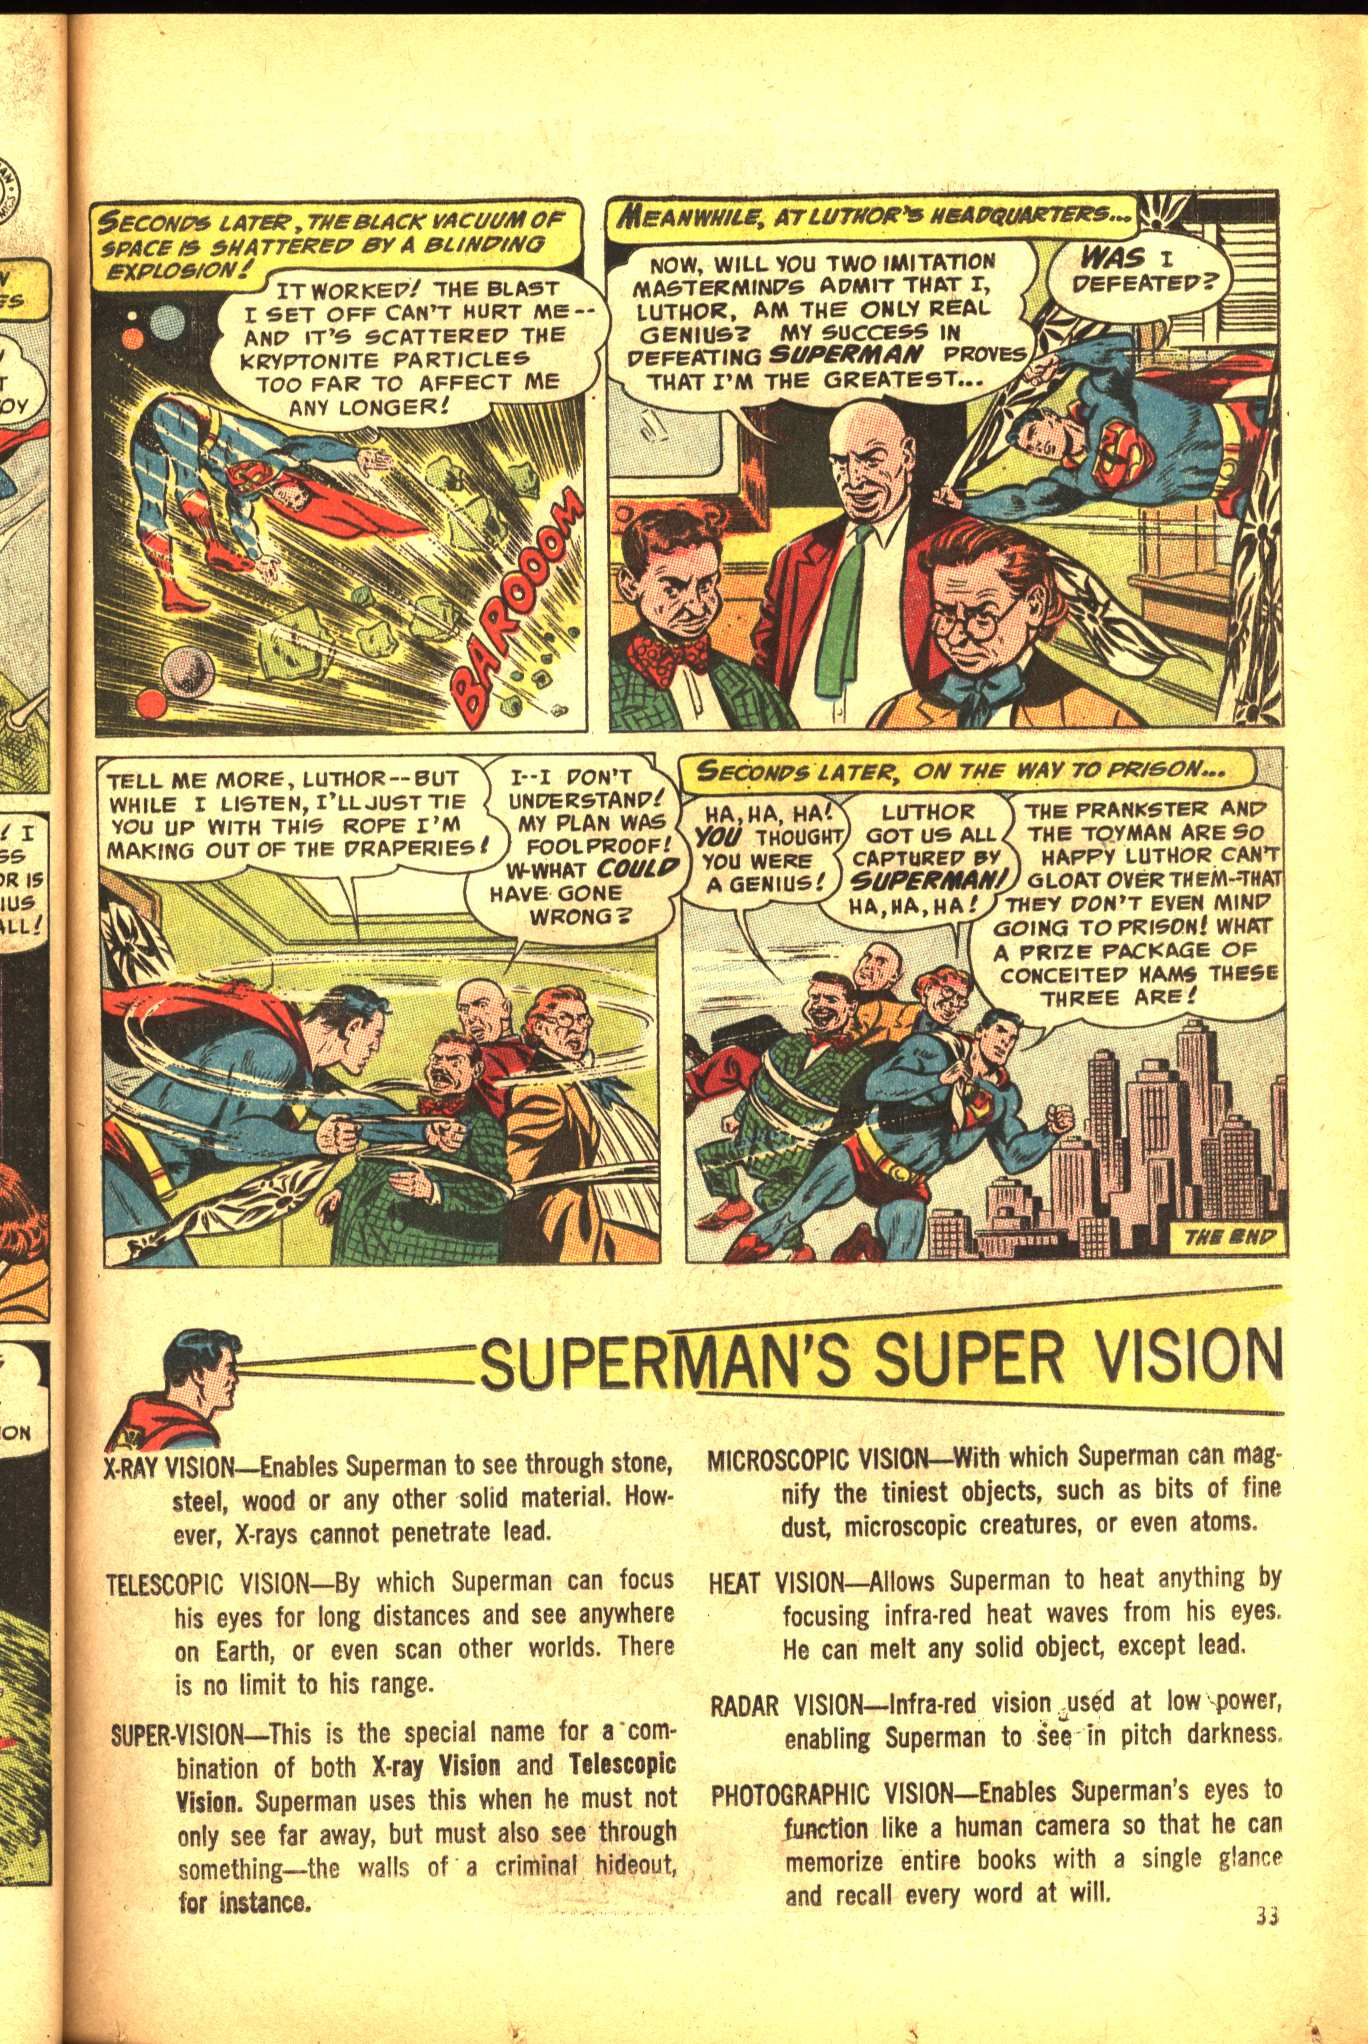 Read online 80 Page Giant comic -  Issue #11 - 35